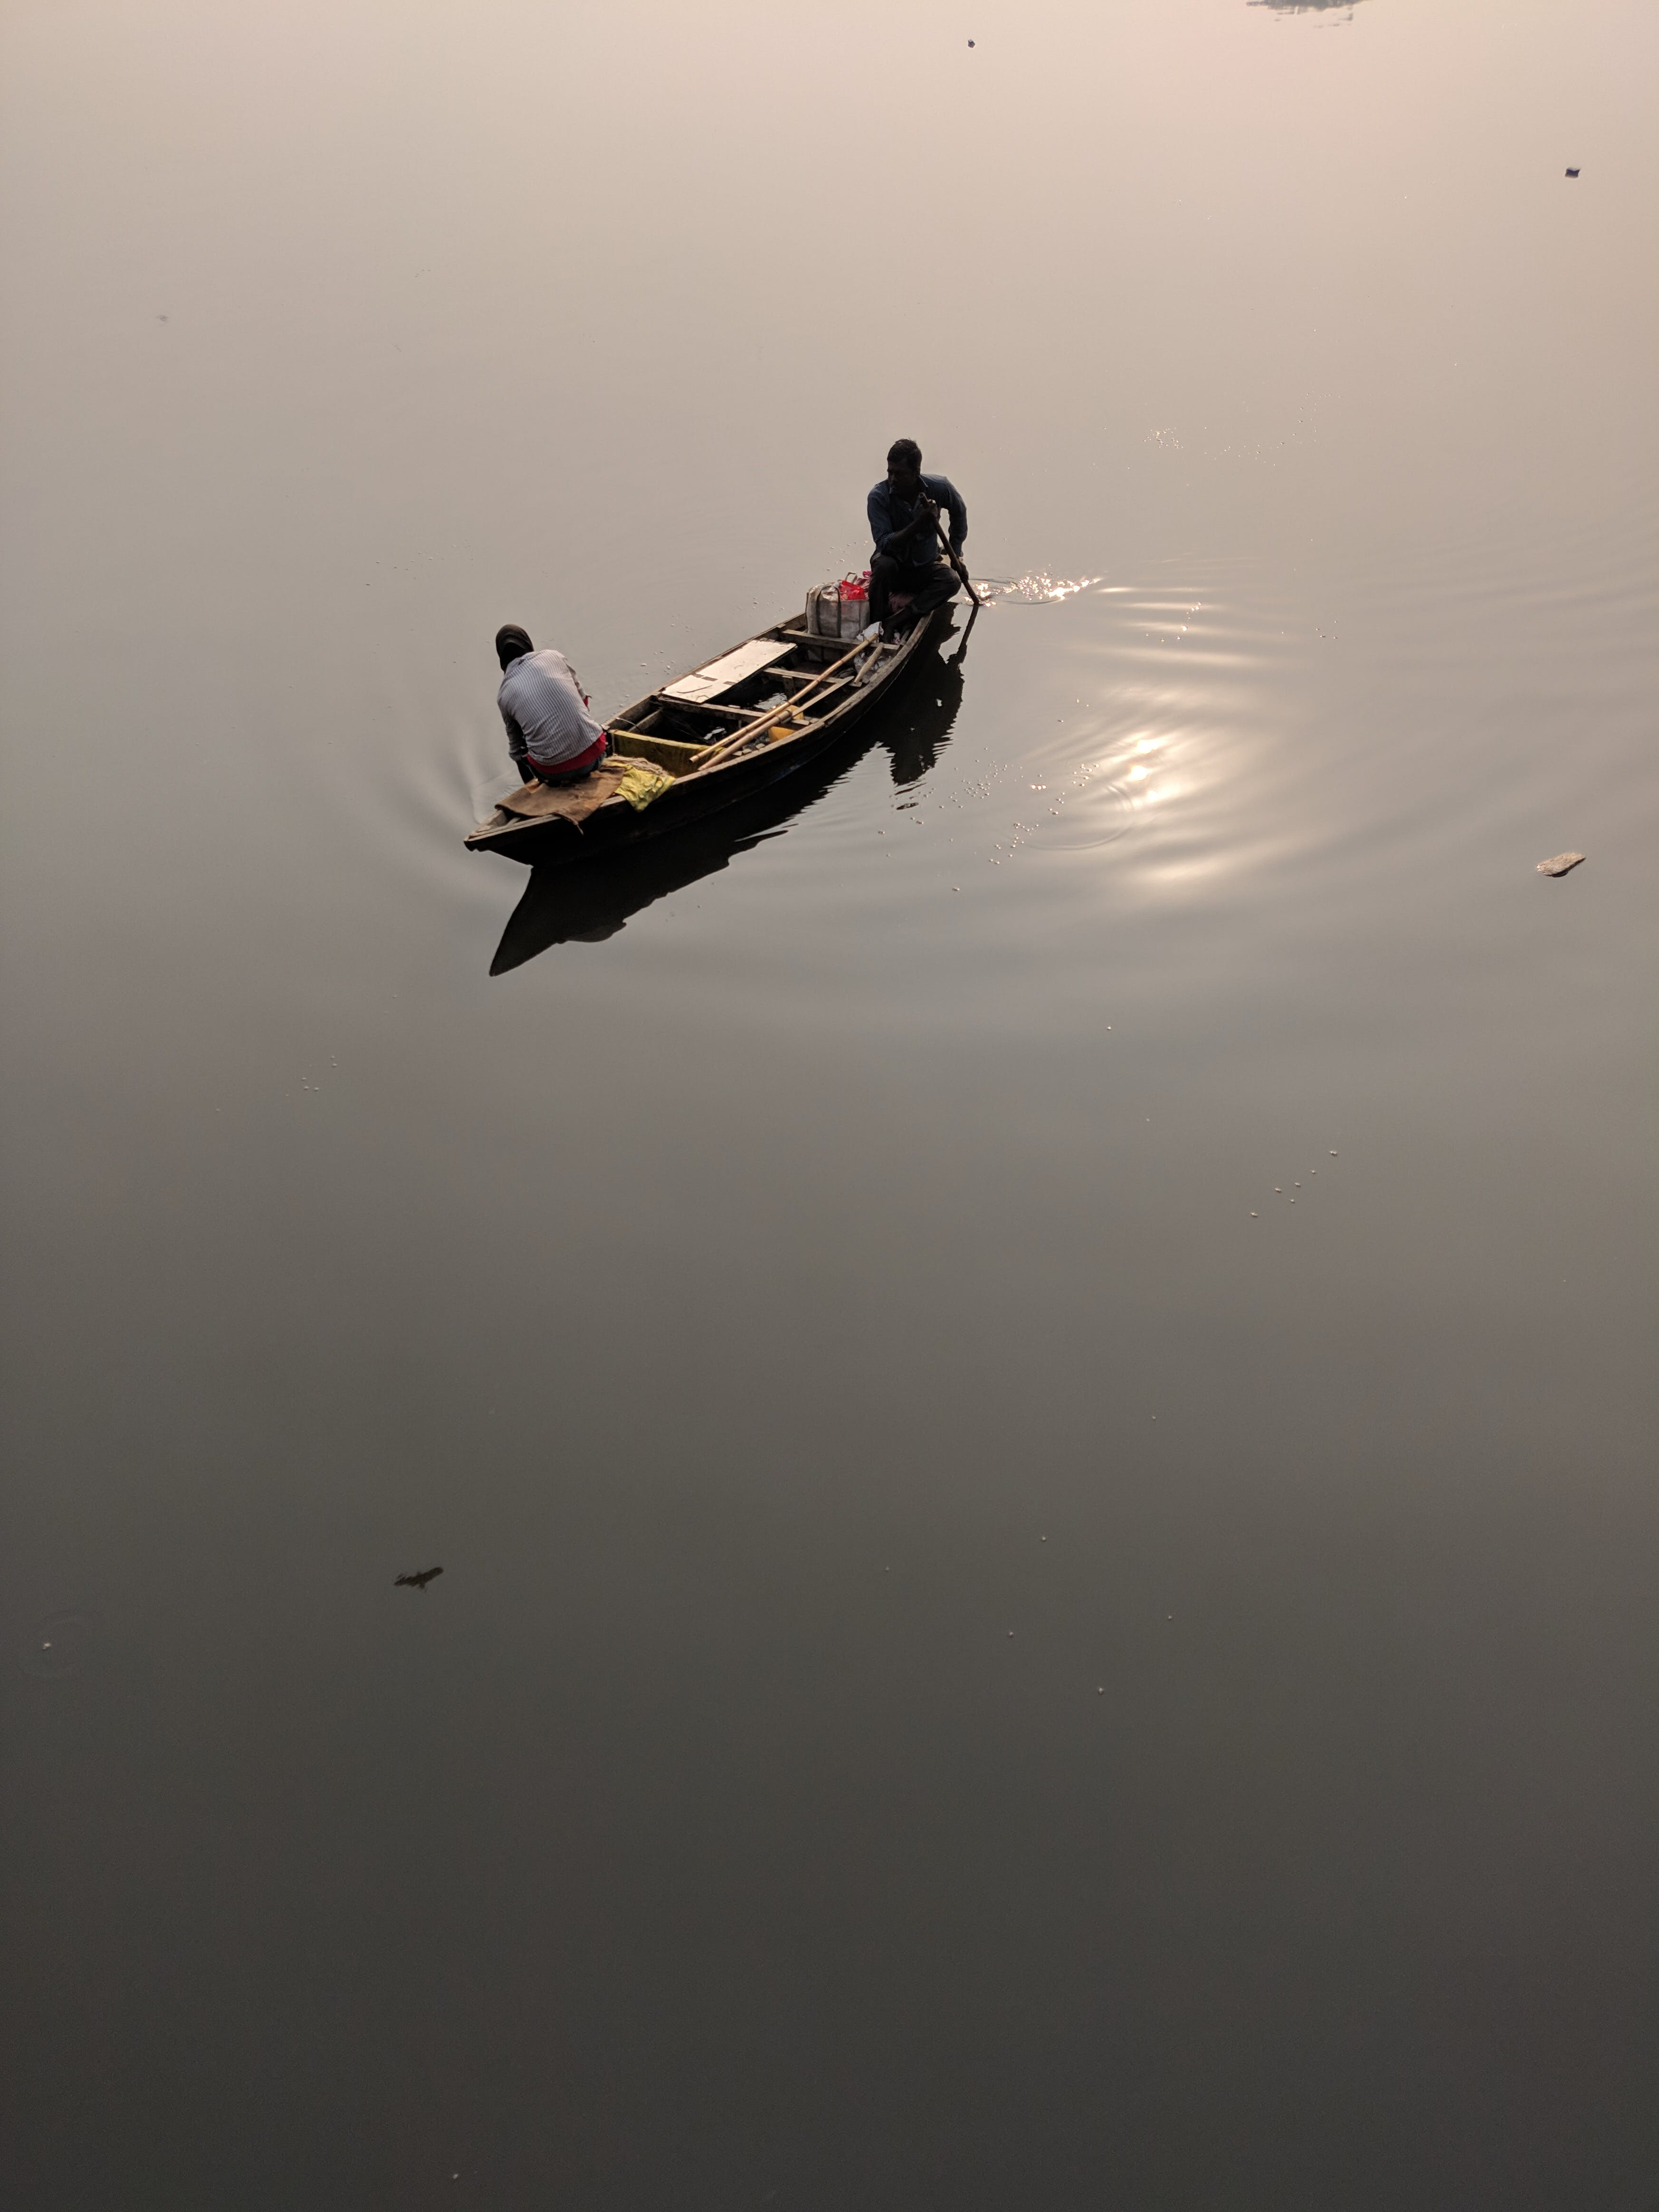 Two People Riding on Canoe during Daytime